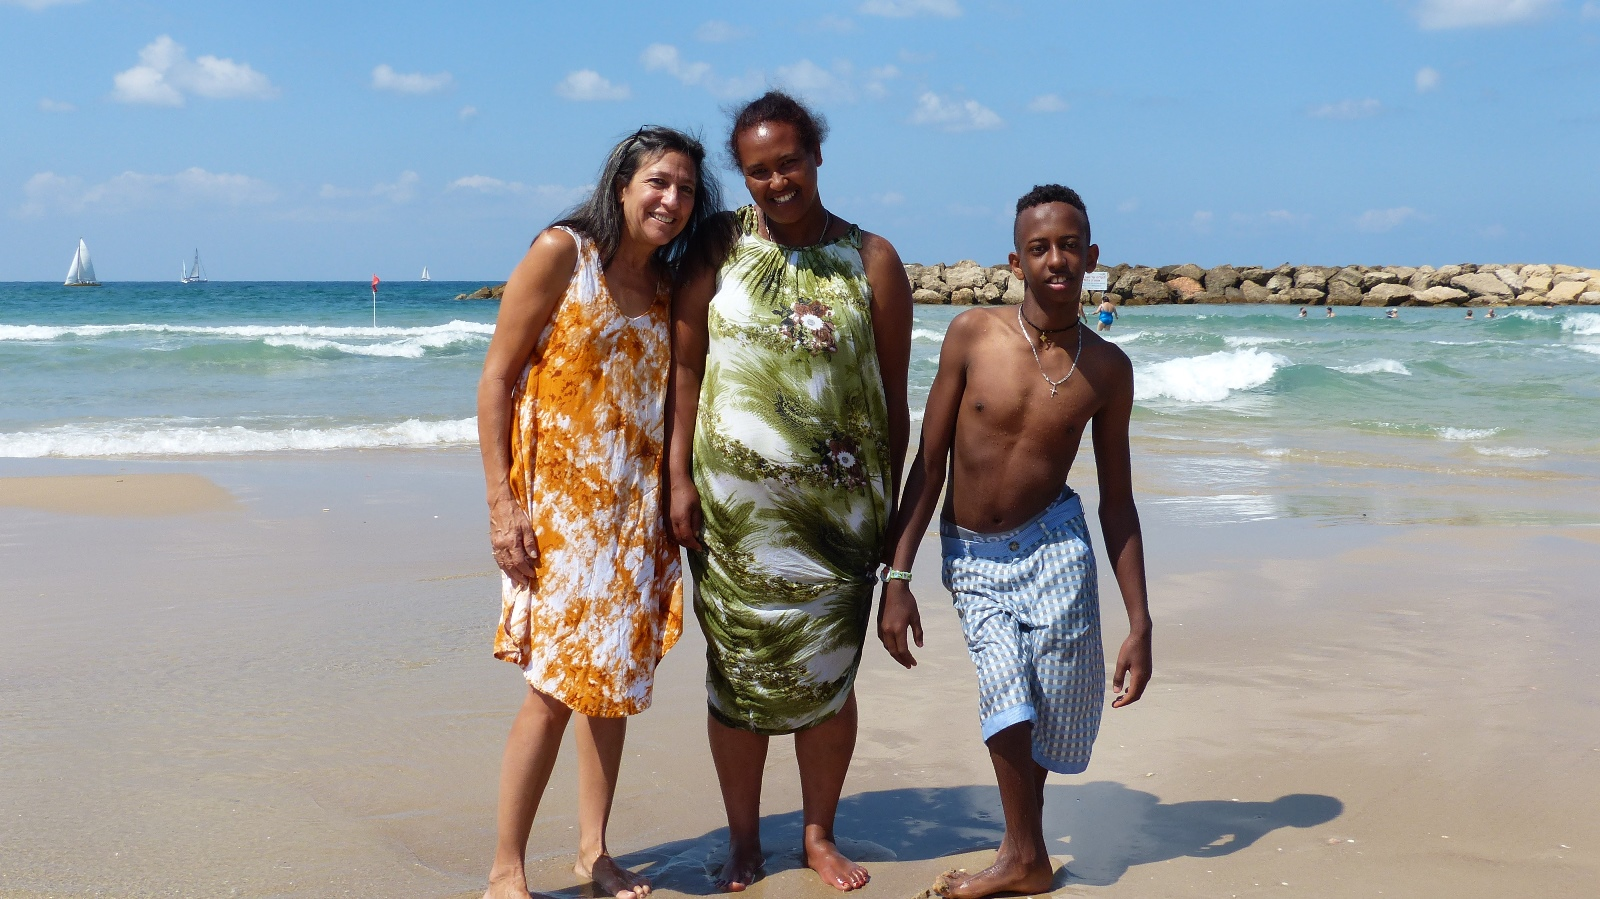 Lori Bacher with Nobel and his mother on the beach in Herzliya. Photo by Doron Bacher